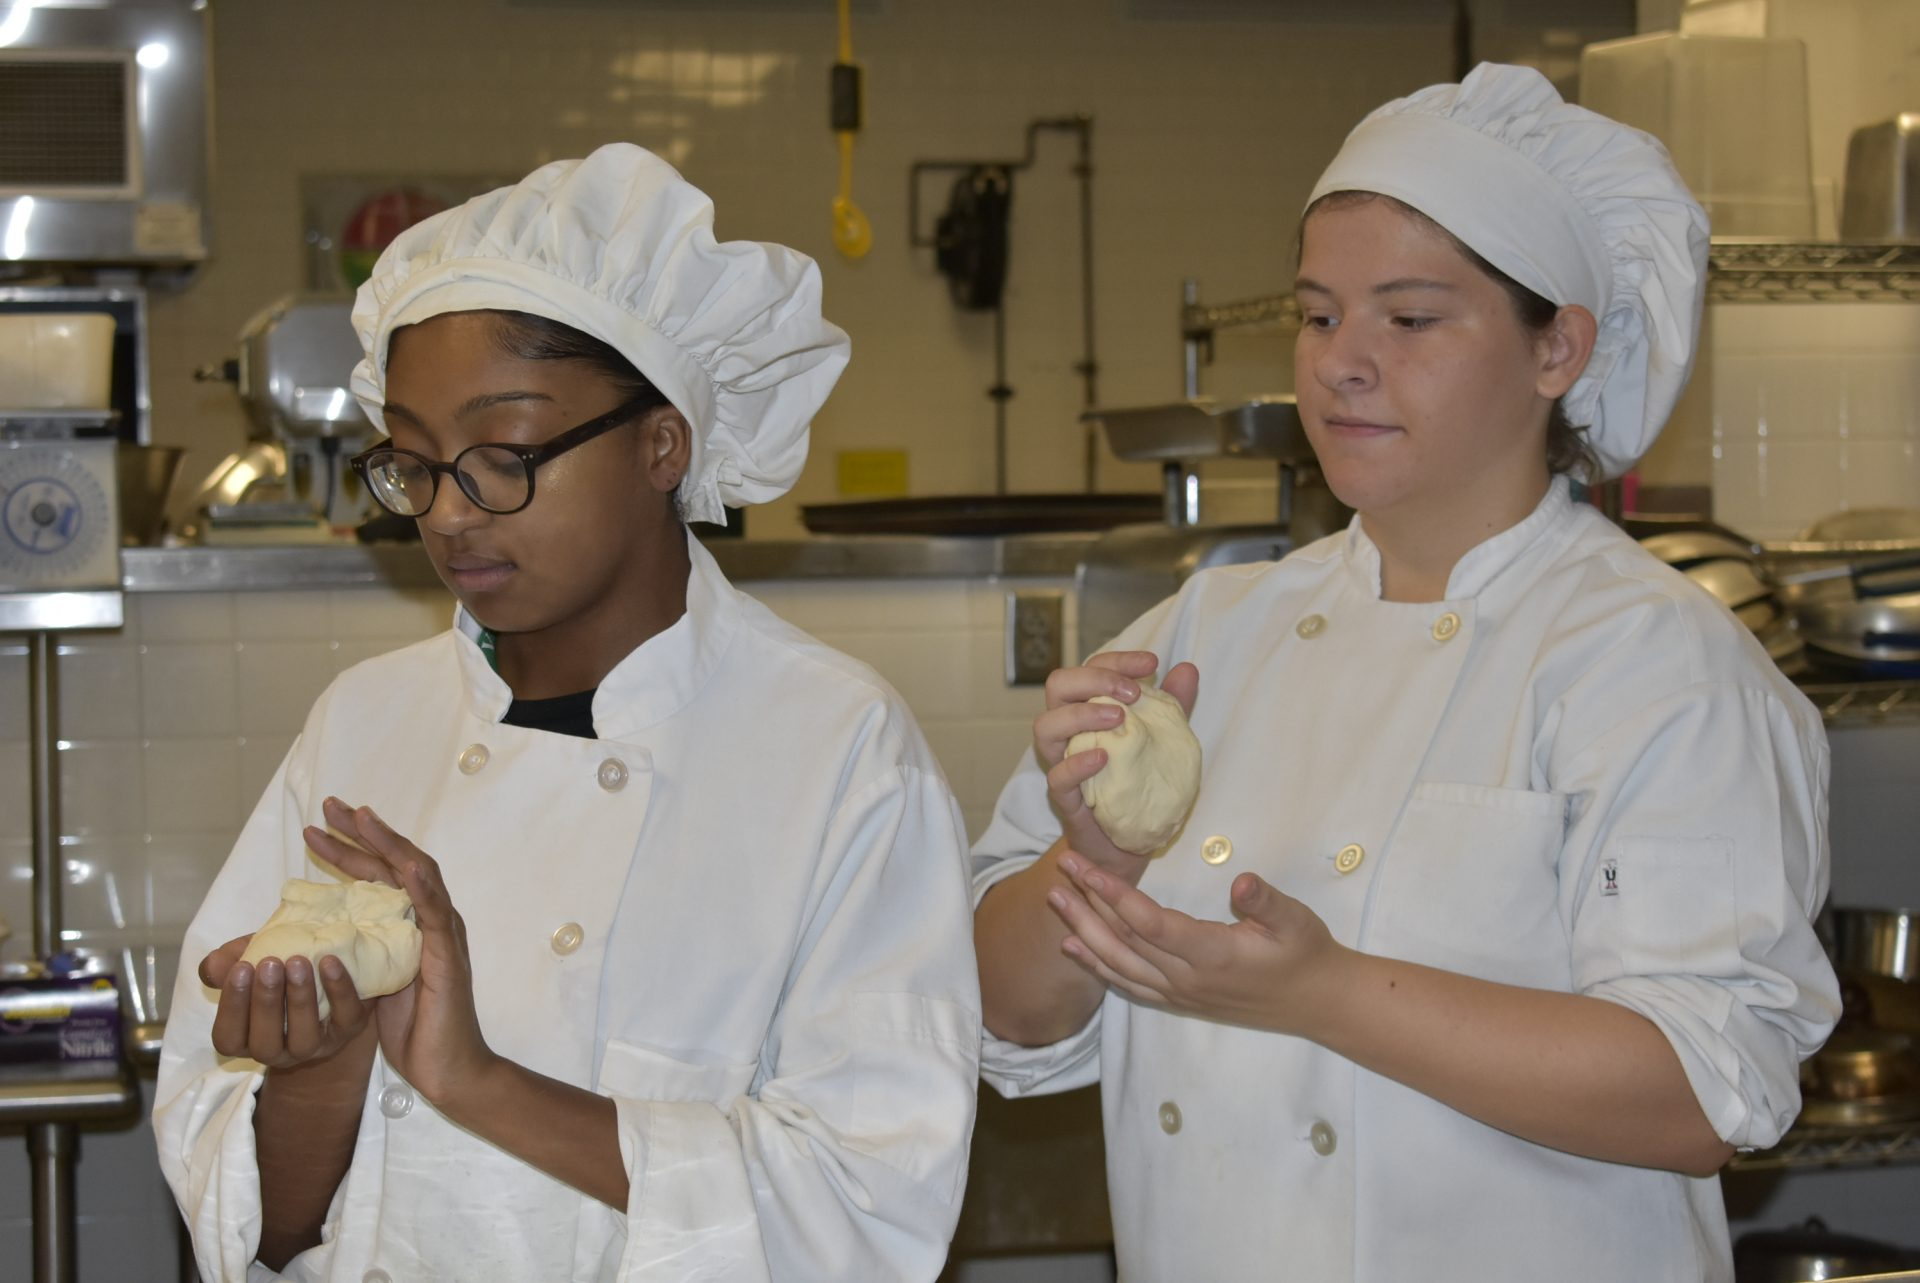 Culinary students kneading dough